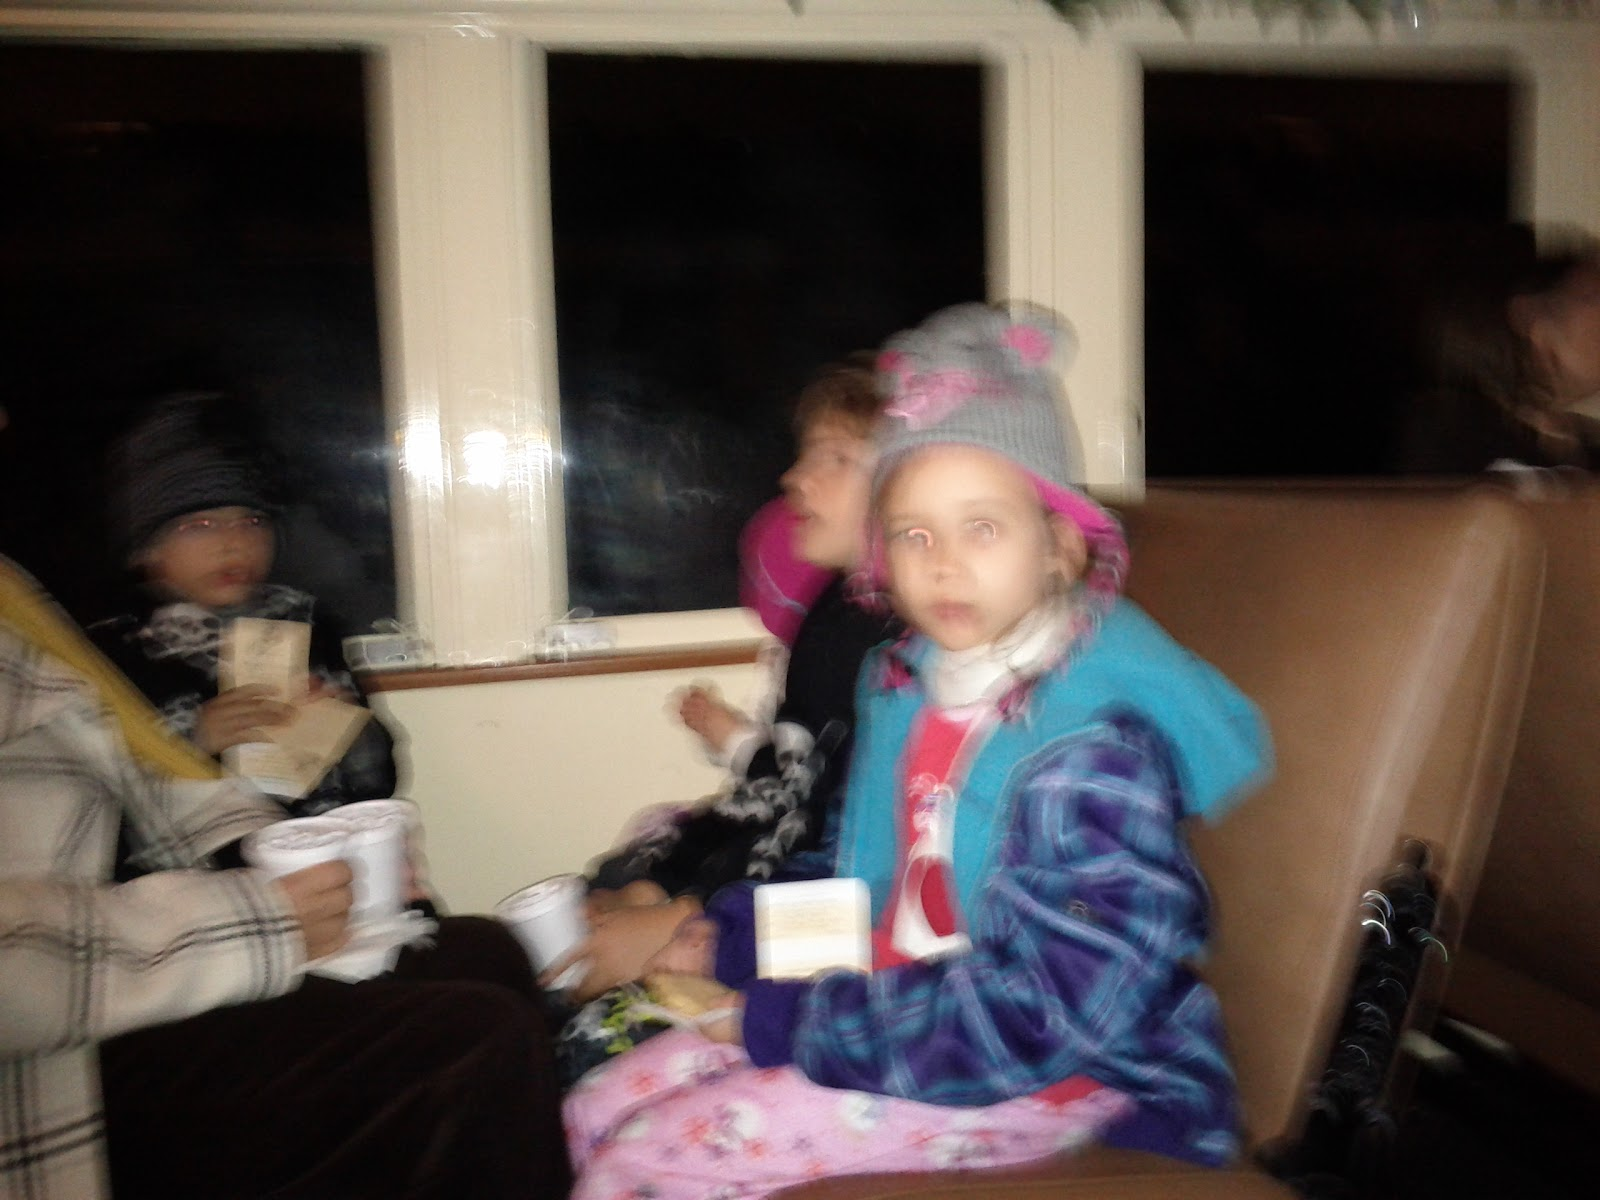 Polar Express Christmas Train 2011 - IMG_20111210_202636.jpg